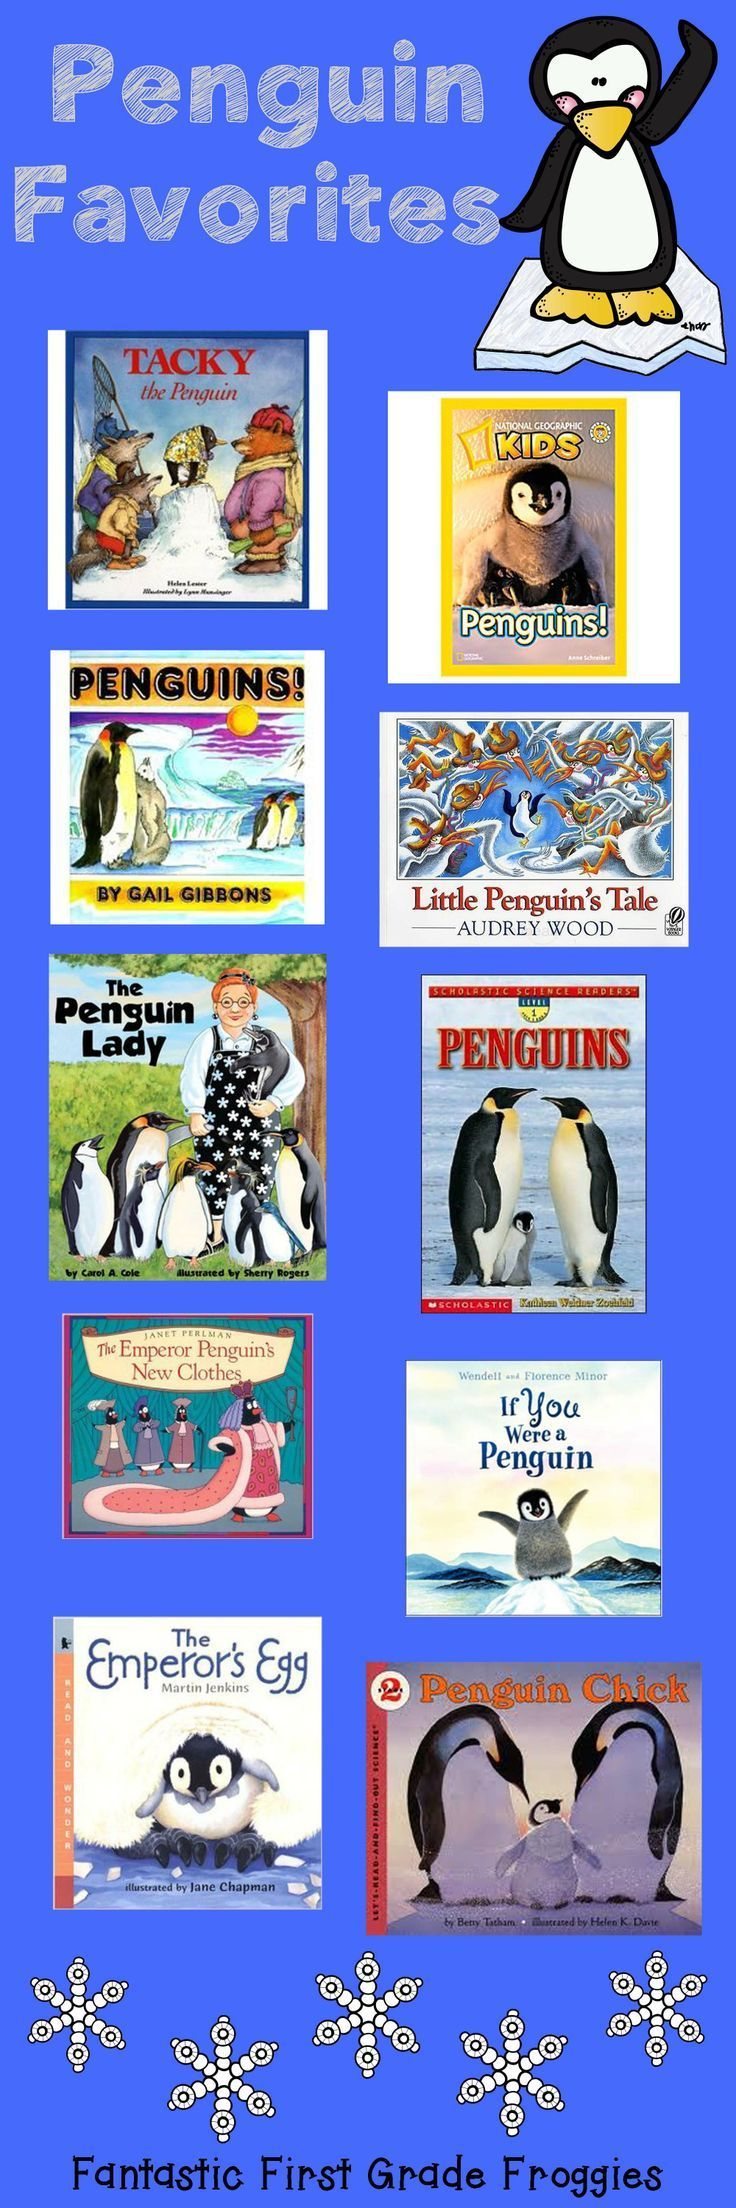 Some of my favorite nonfiction and fiction penguin books, from Fantastic First Grade Froggies. I love, love, love The Emperor's Egg!